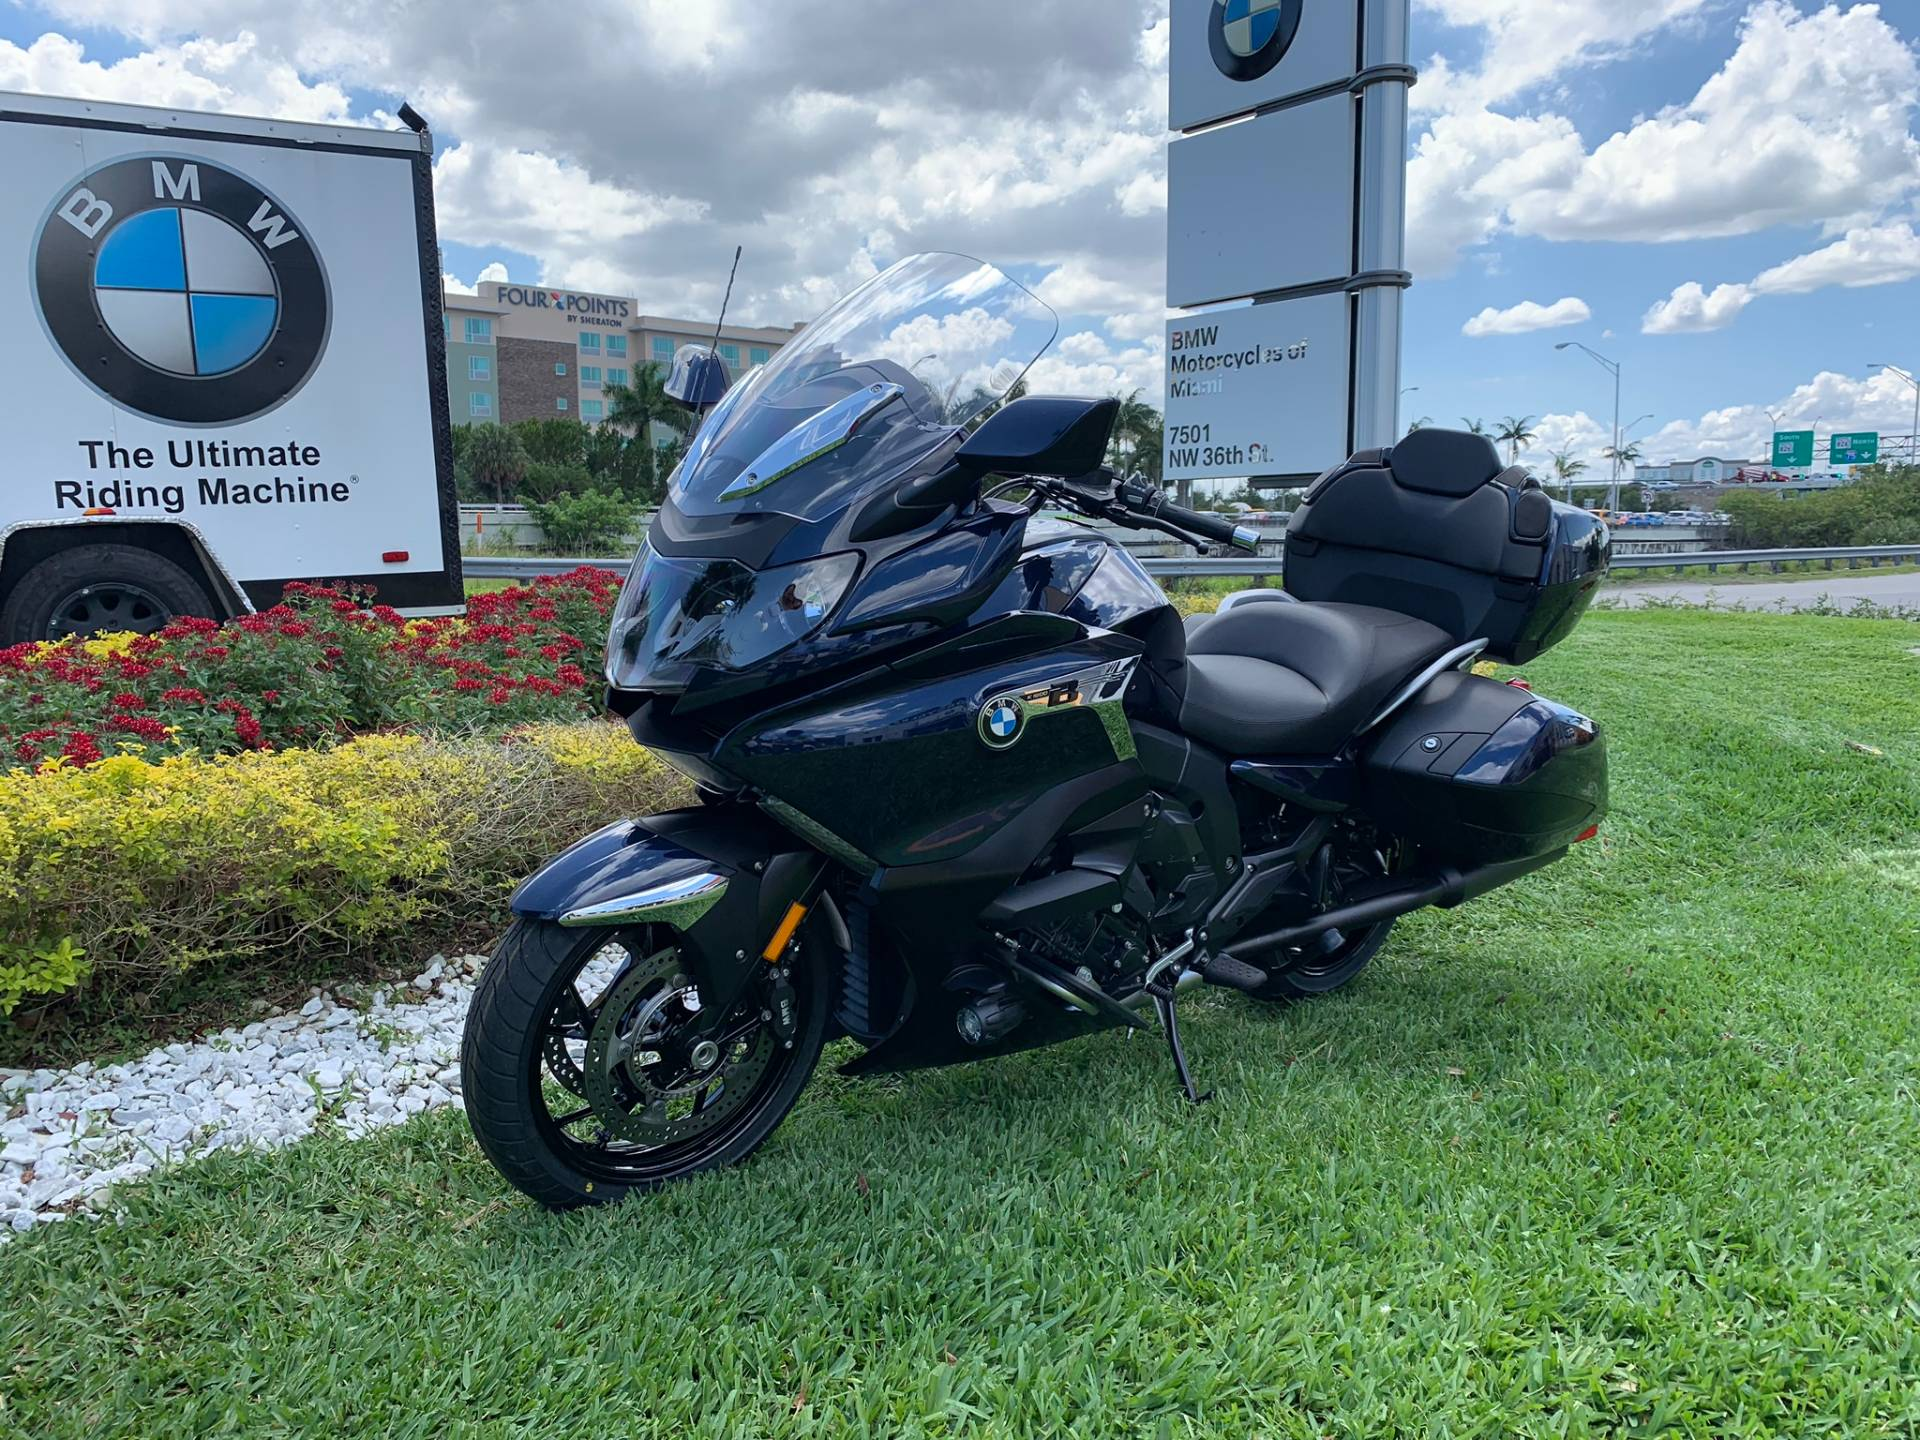 New 2019 BMW K 1600 B for sale, BMW K 1600B for sale, BMW Motorcycle K1600B, new BMW Bagger, Gran America. BMW Motorcycles of Miami, Motorcycles of Miami, Motorcycles Miami - Photo 4